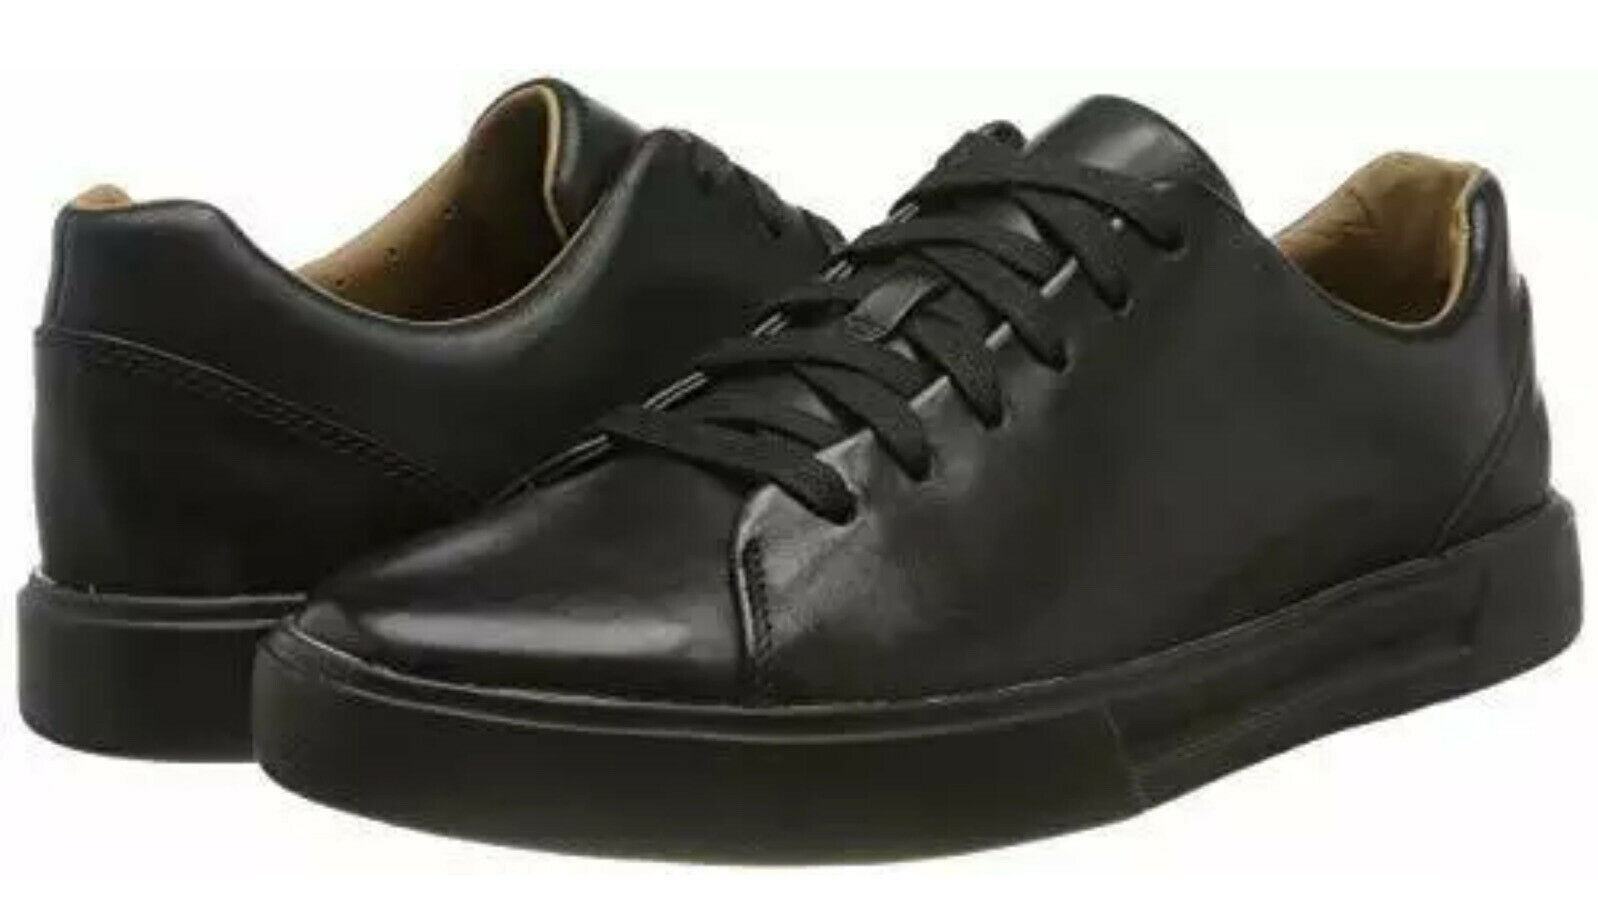 Unstructured Clarks UK 6 /39.5 Un Costa Lace Casual Shoes Black leather BOXED